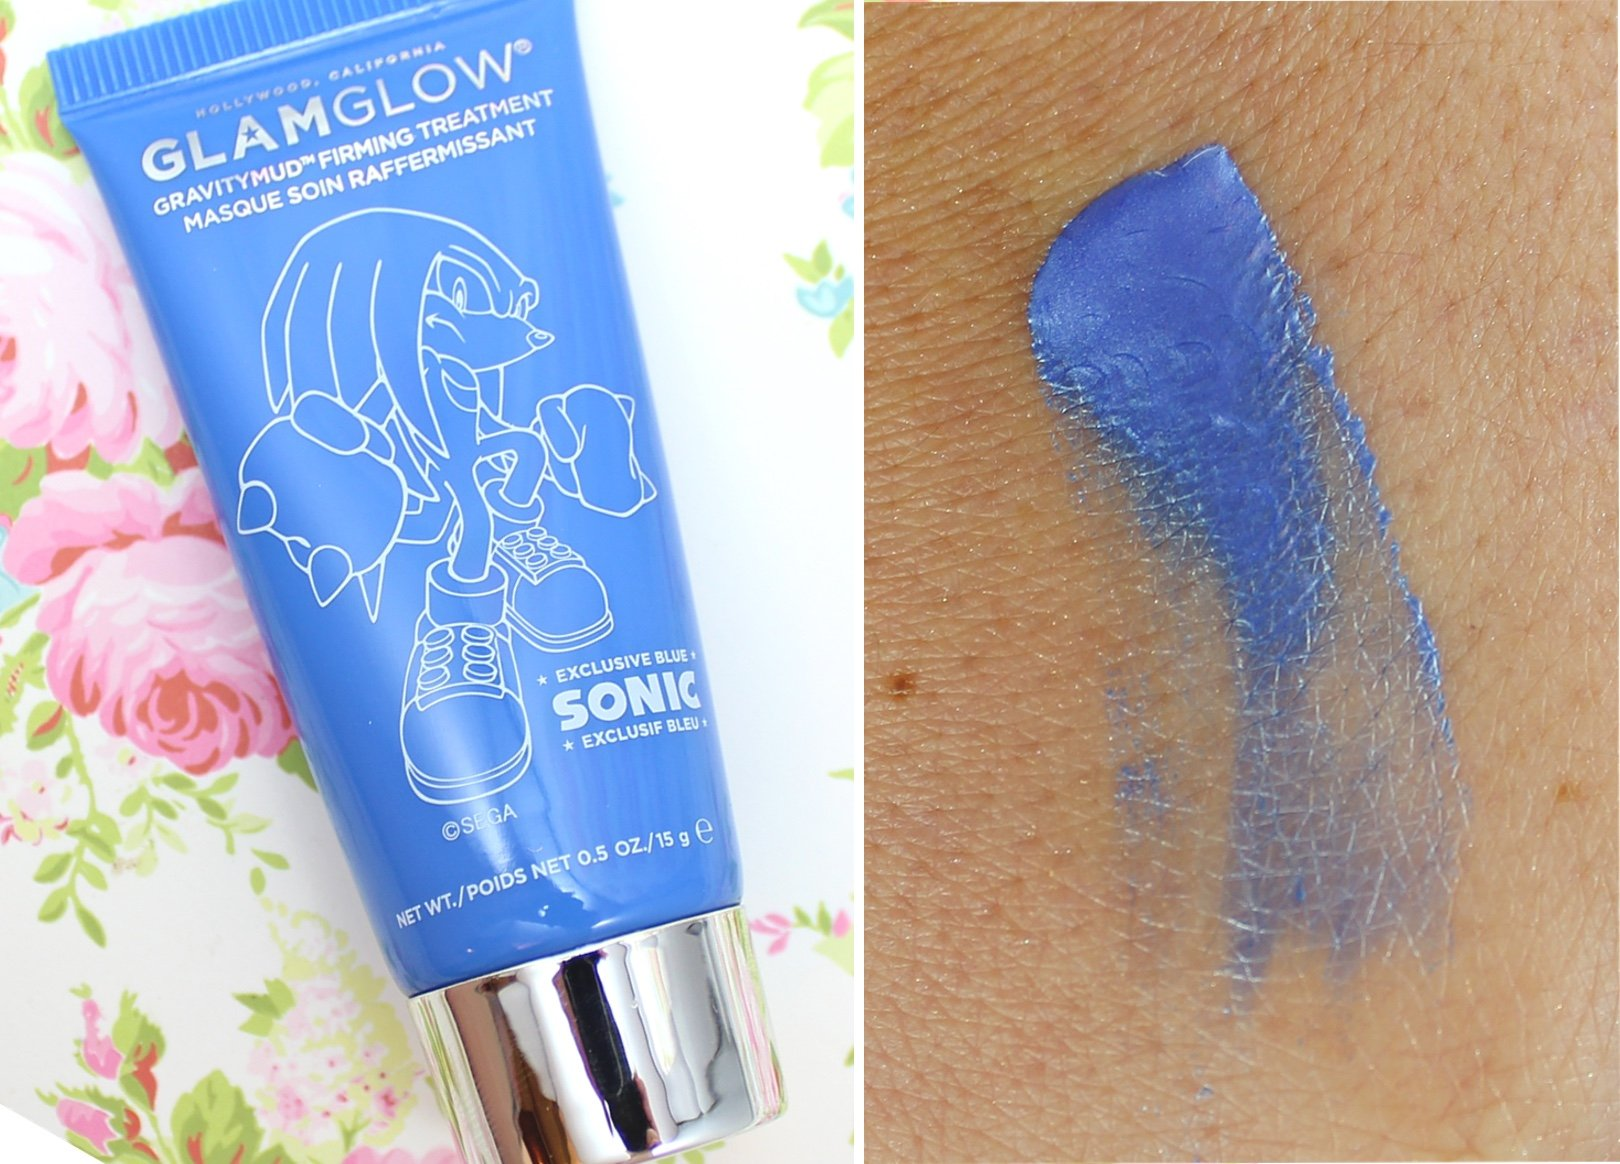 GLAMGLOW Gravitymud Firming Treatment - Sonic Blue review